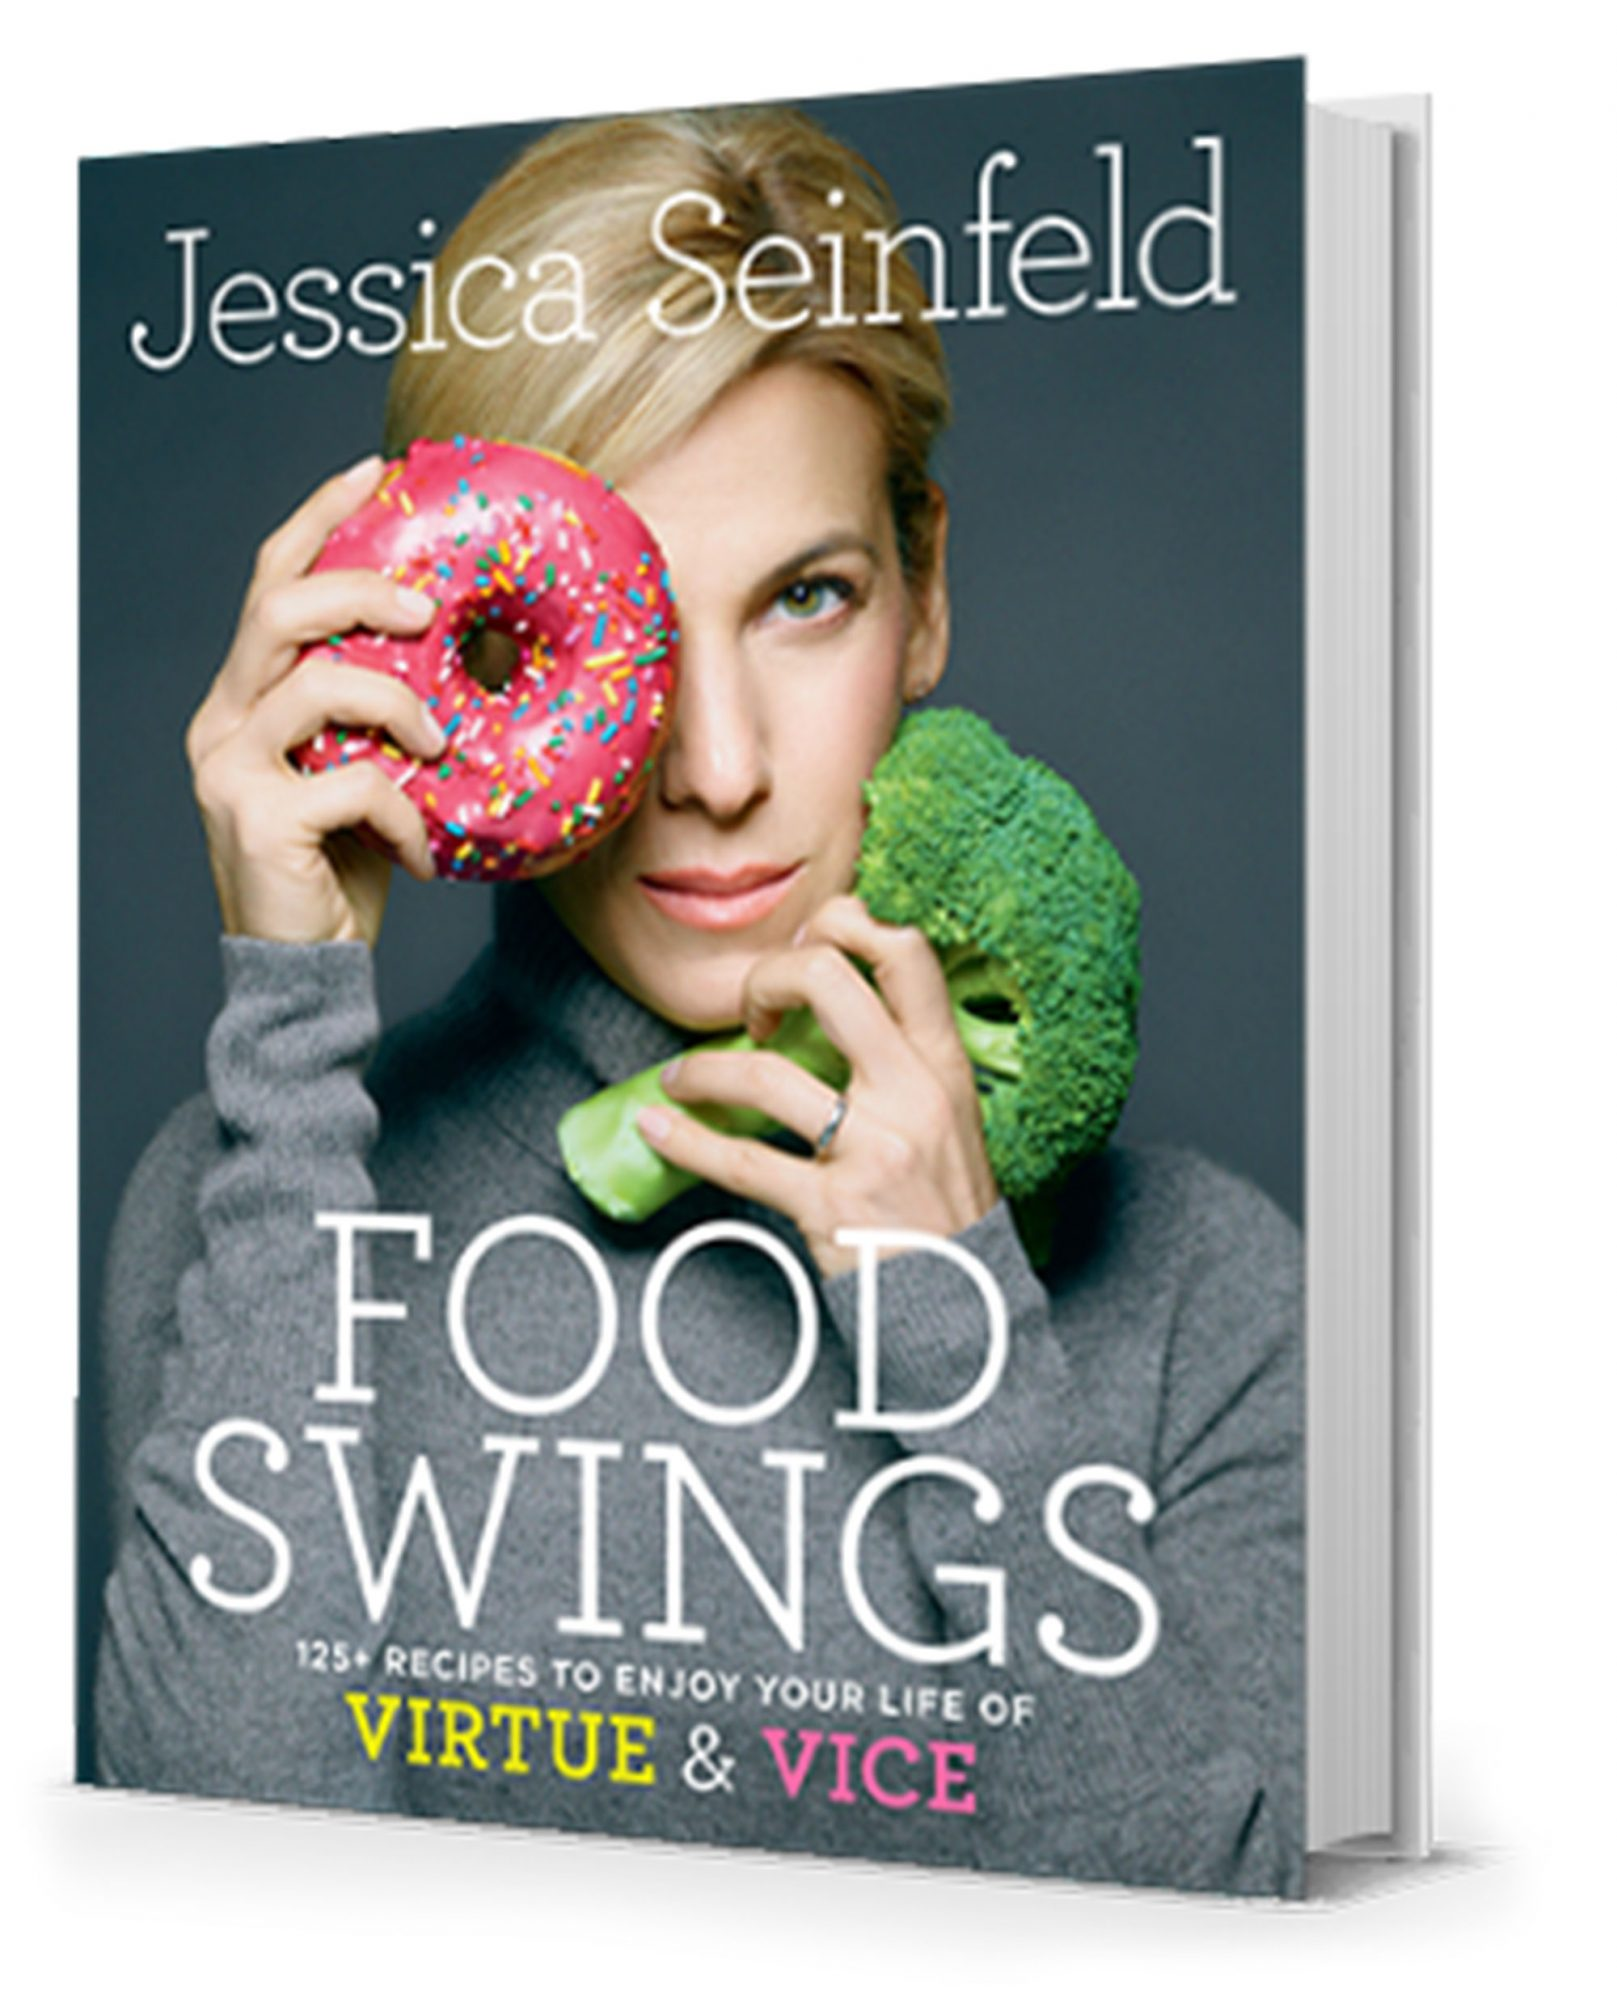 Jessica Seinfeld Mother's Day GG